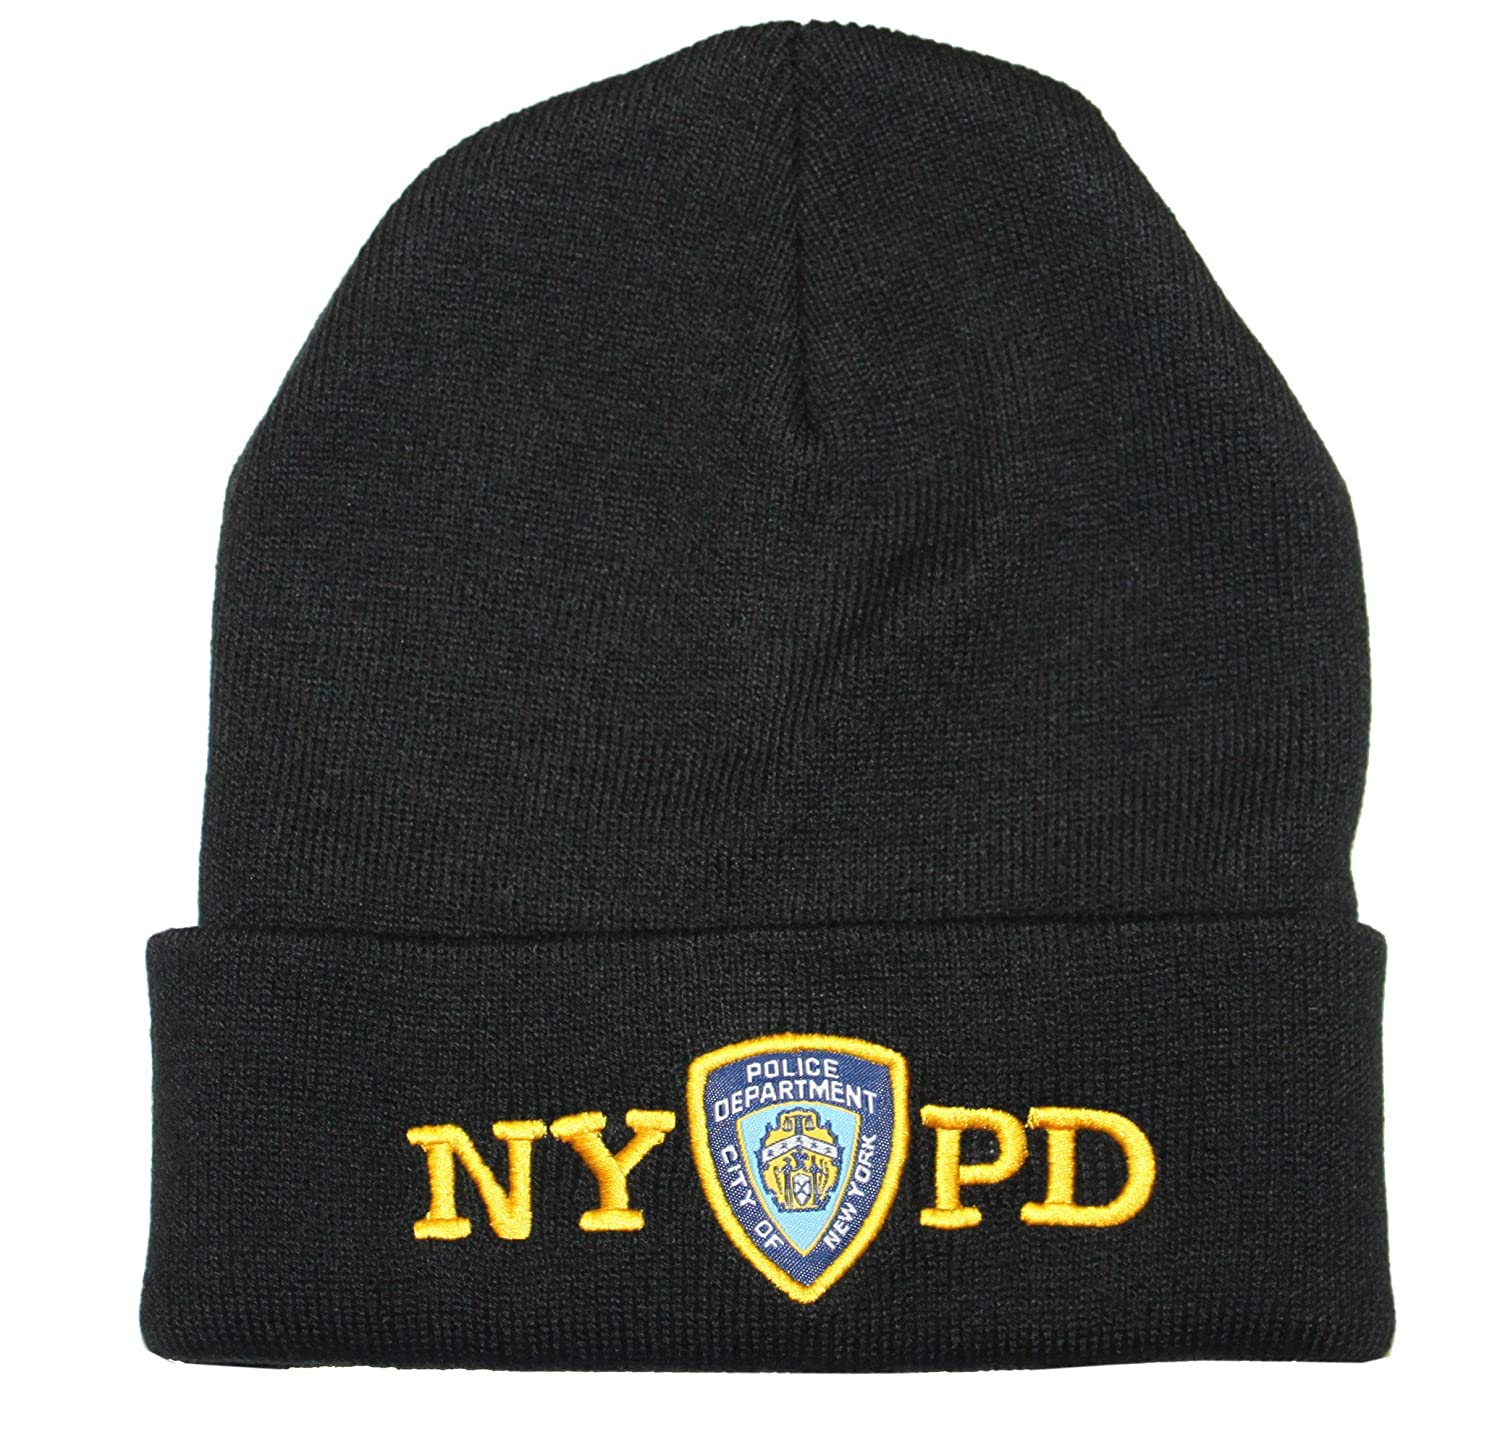 amazon com nypd winter hat police badge new york police